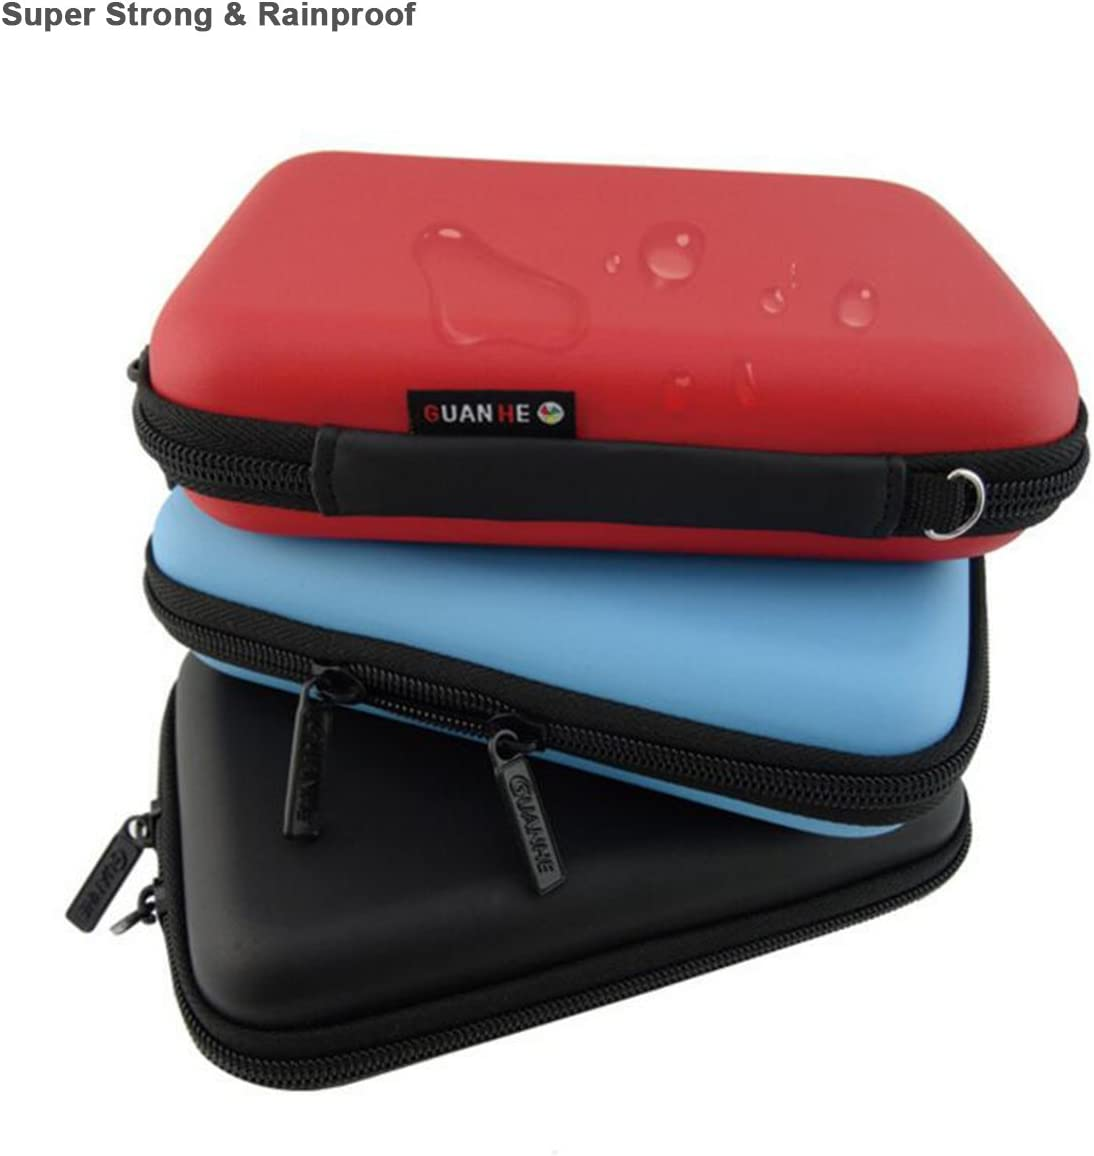 Small Size Projector Travel Carrying Case for Pico DLP Handheld Pocket Mini Projector and Accessories Organizer Multifunction - Red